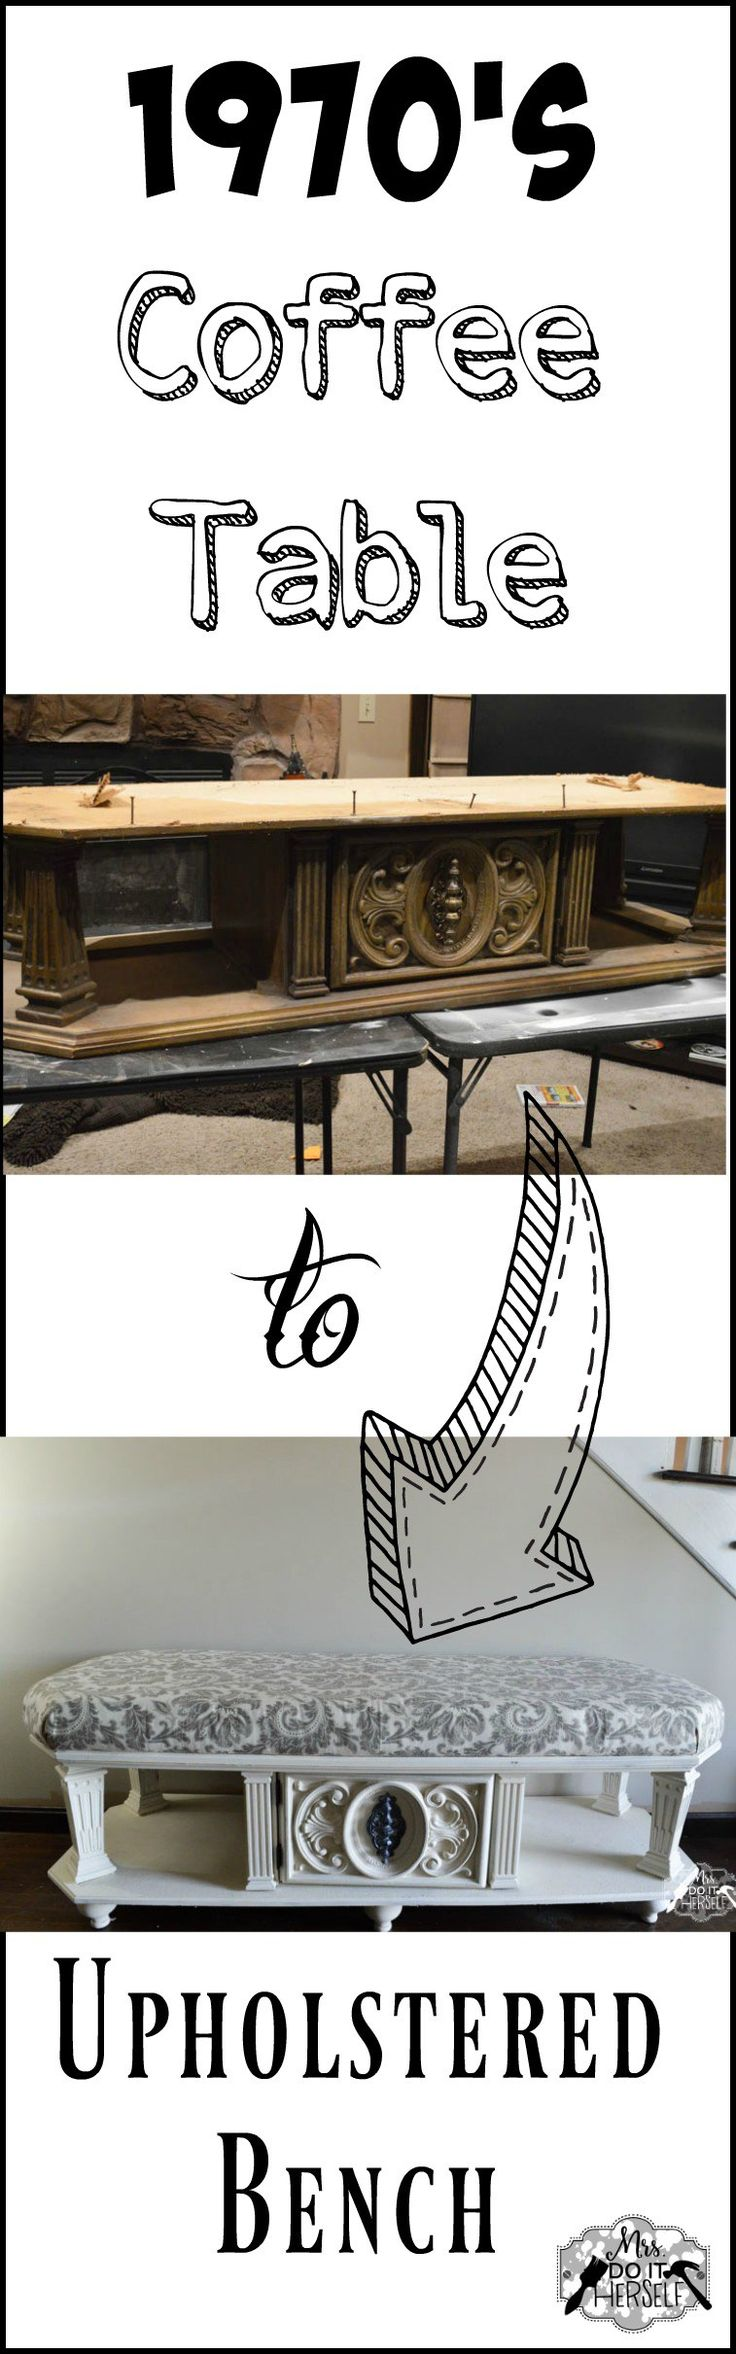 Old coffee table to awesome upholstered bench - great tutorial